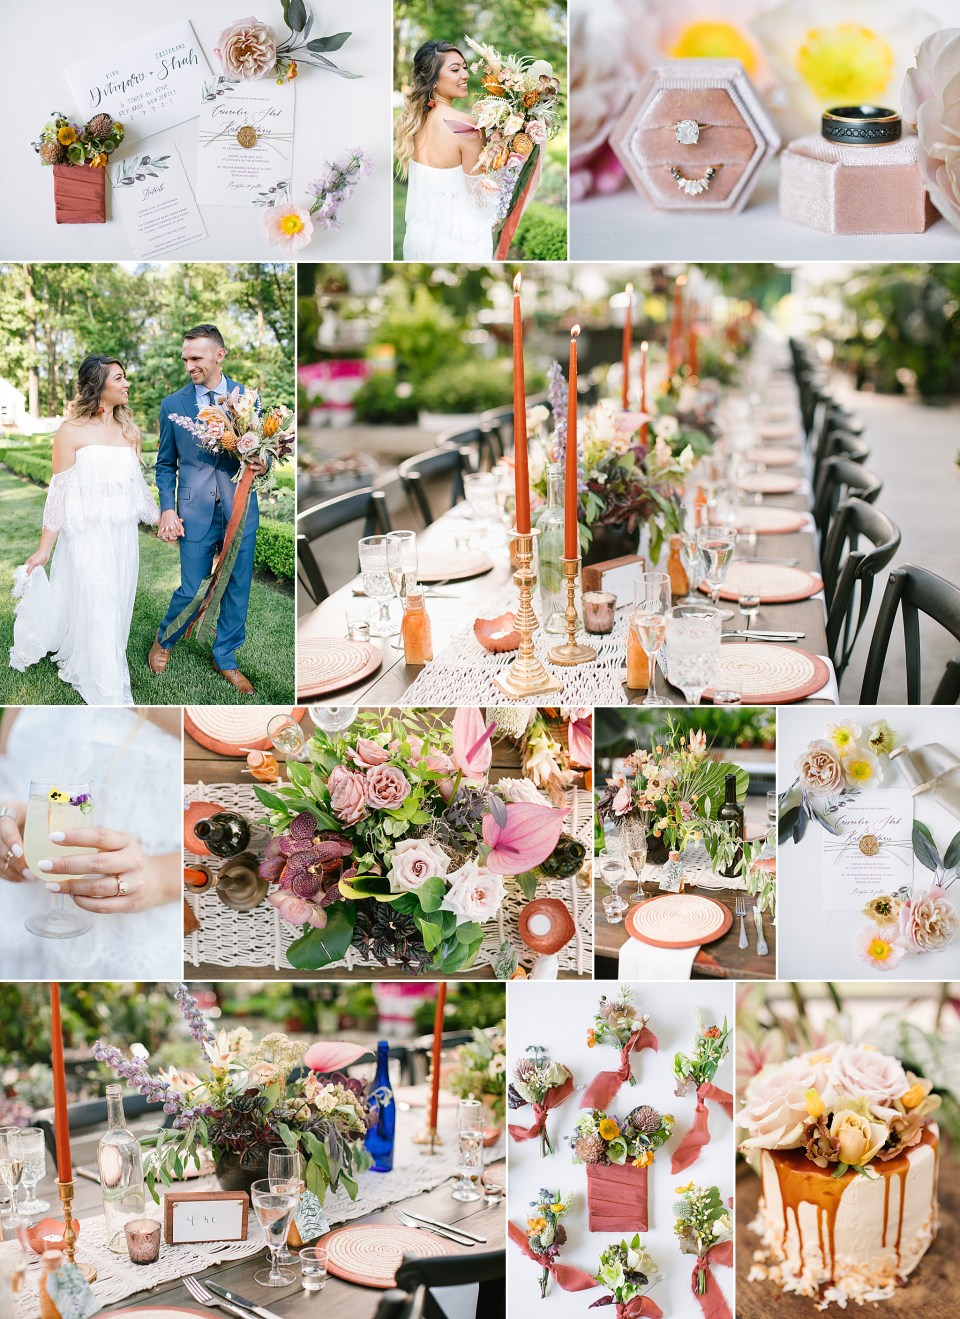 Ashley Mac Photographs | The Herbary Bear Creek Farm Wedding | Howell NJ wedding day | Howell NJ wedding photographer, NJ wedding photographer, New Jersey wedding photographer, boho wedding inspiration, summer wedding inspiration